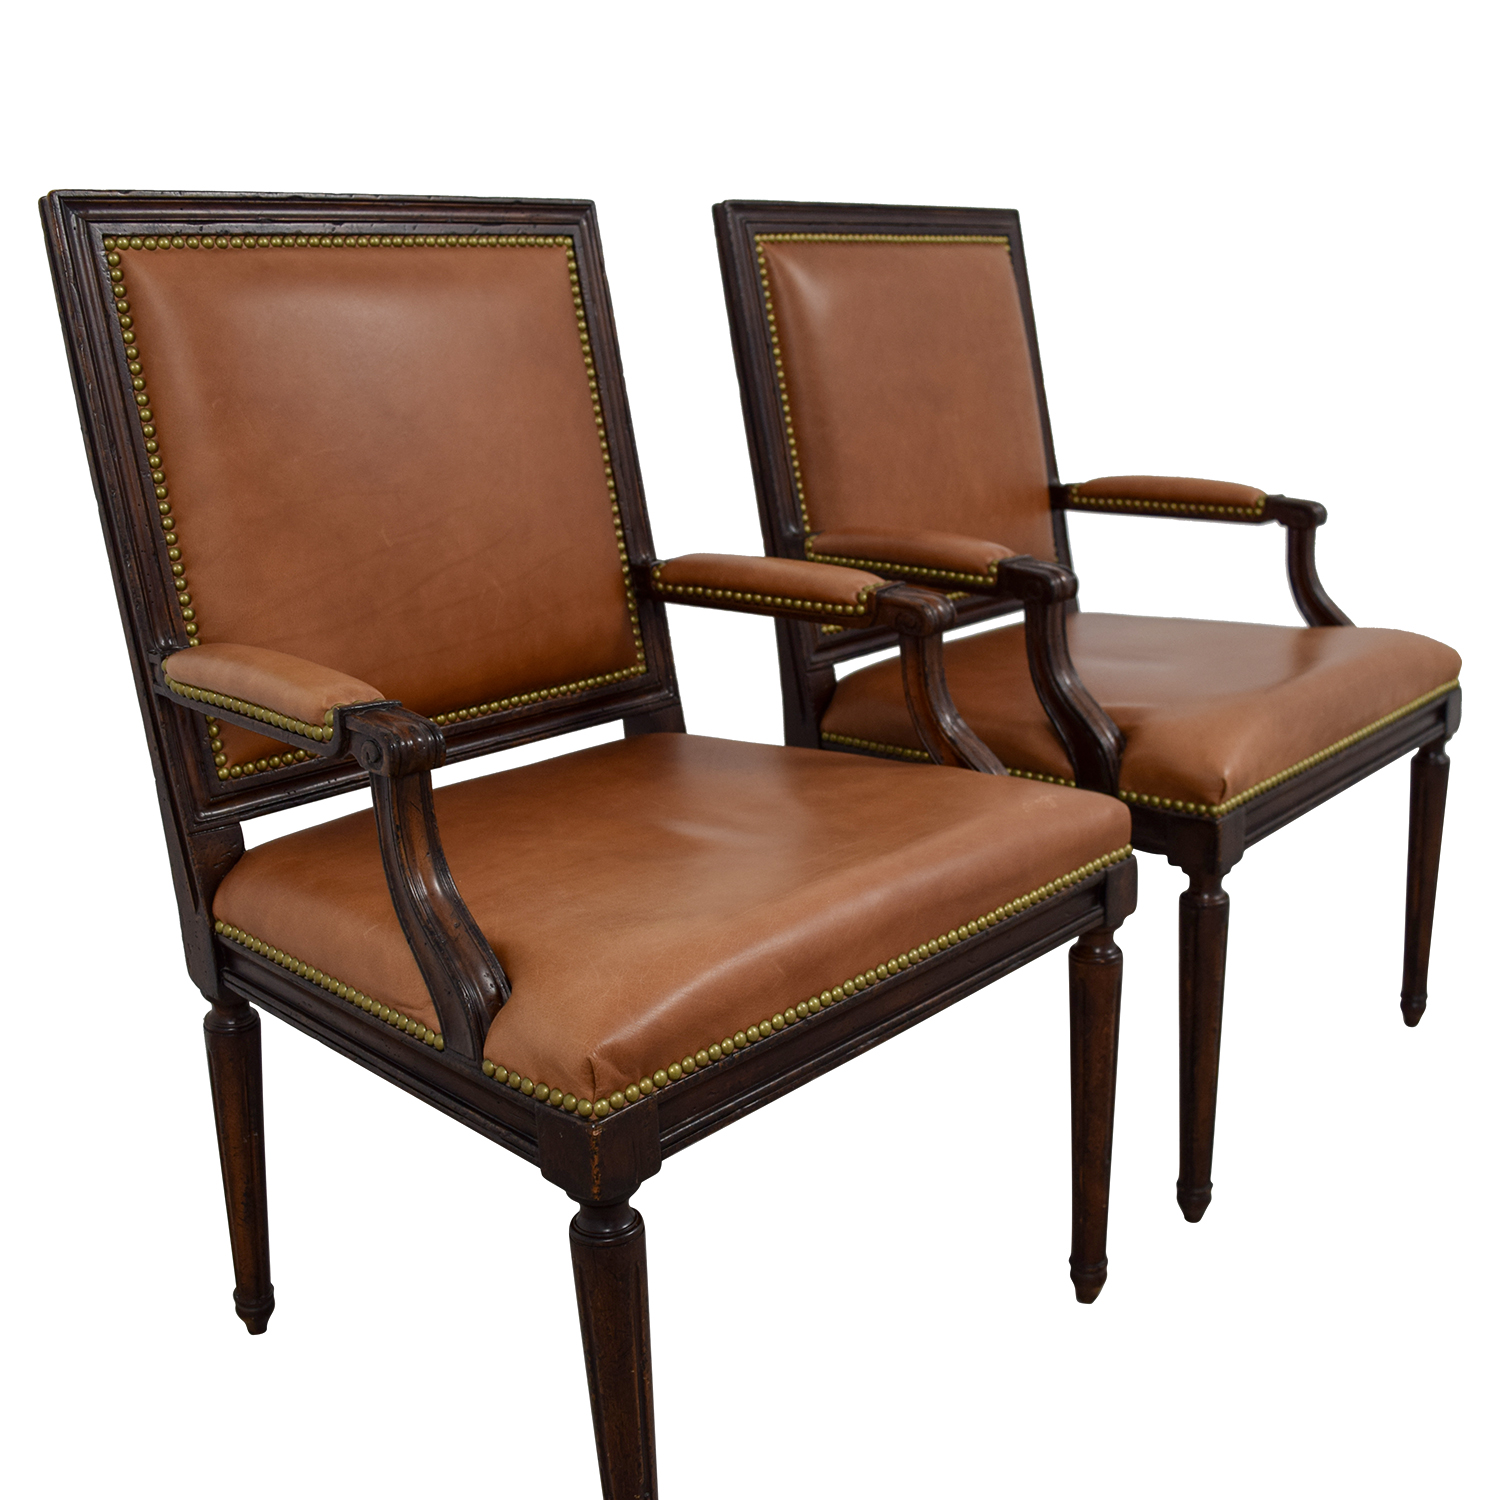 Henredon Henredon Brown Leather Nailhead Accent Chairs second hand